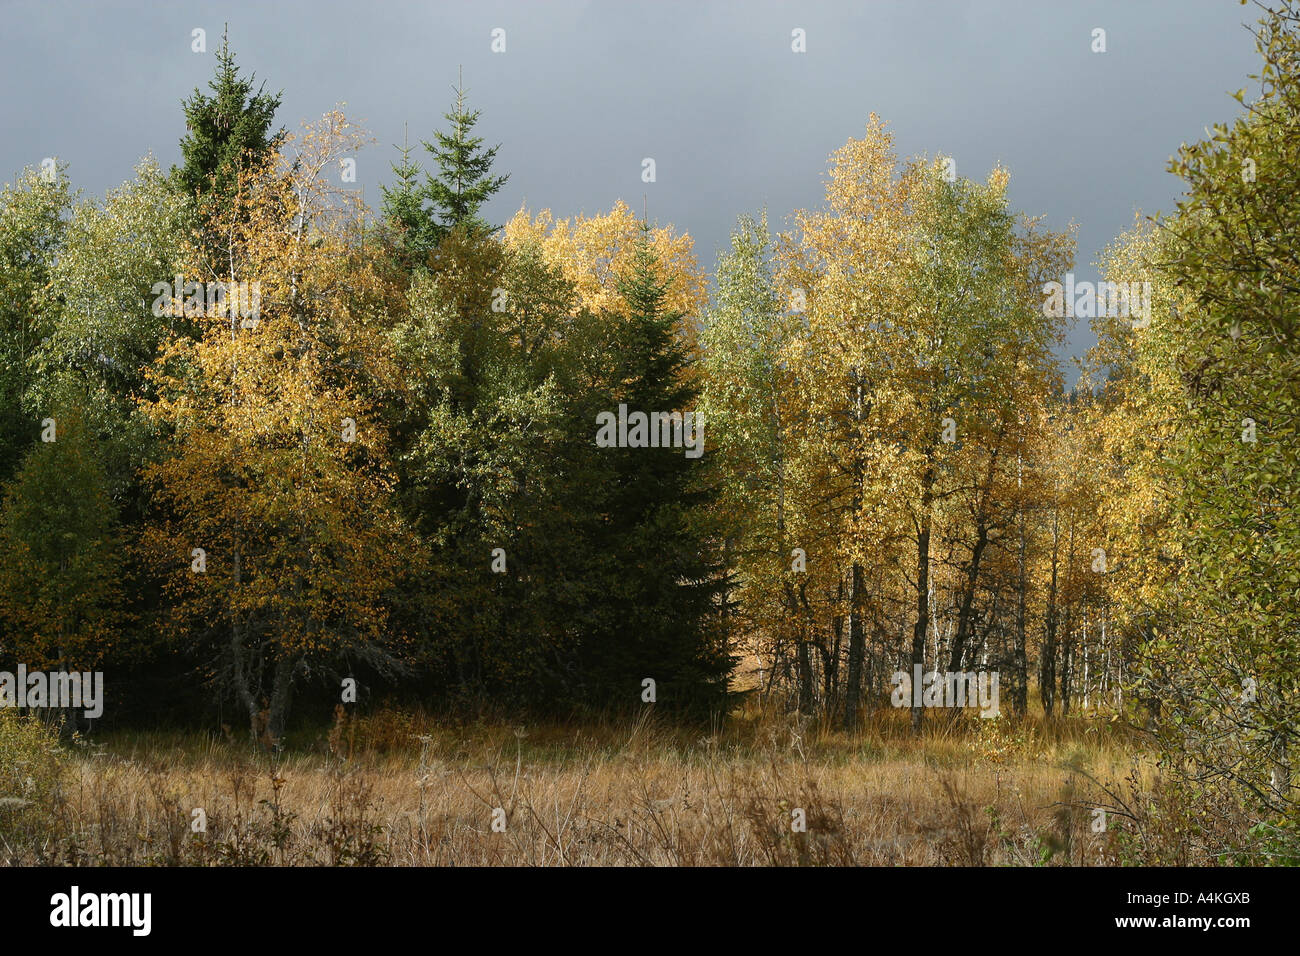 France, Jura, woods in autumn - Stock Image